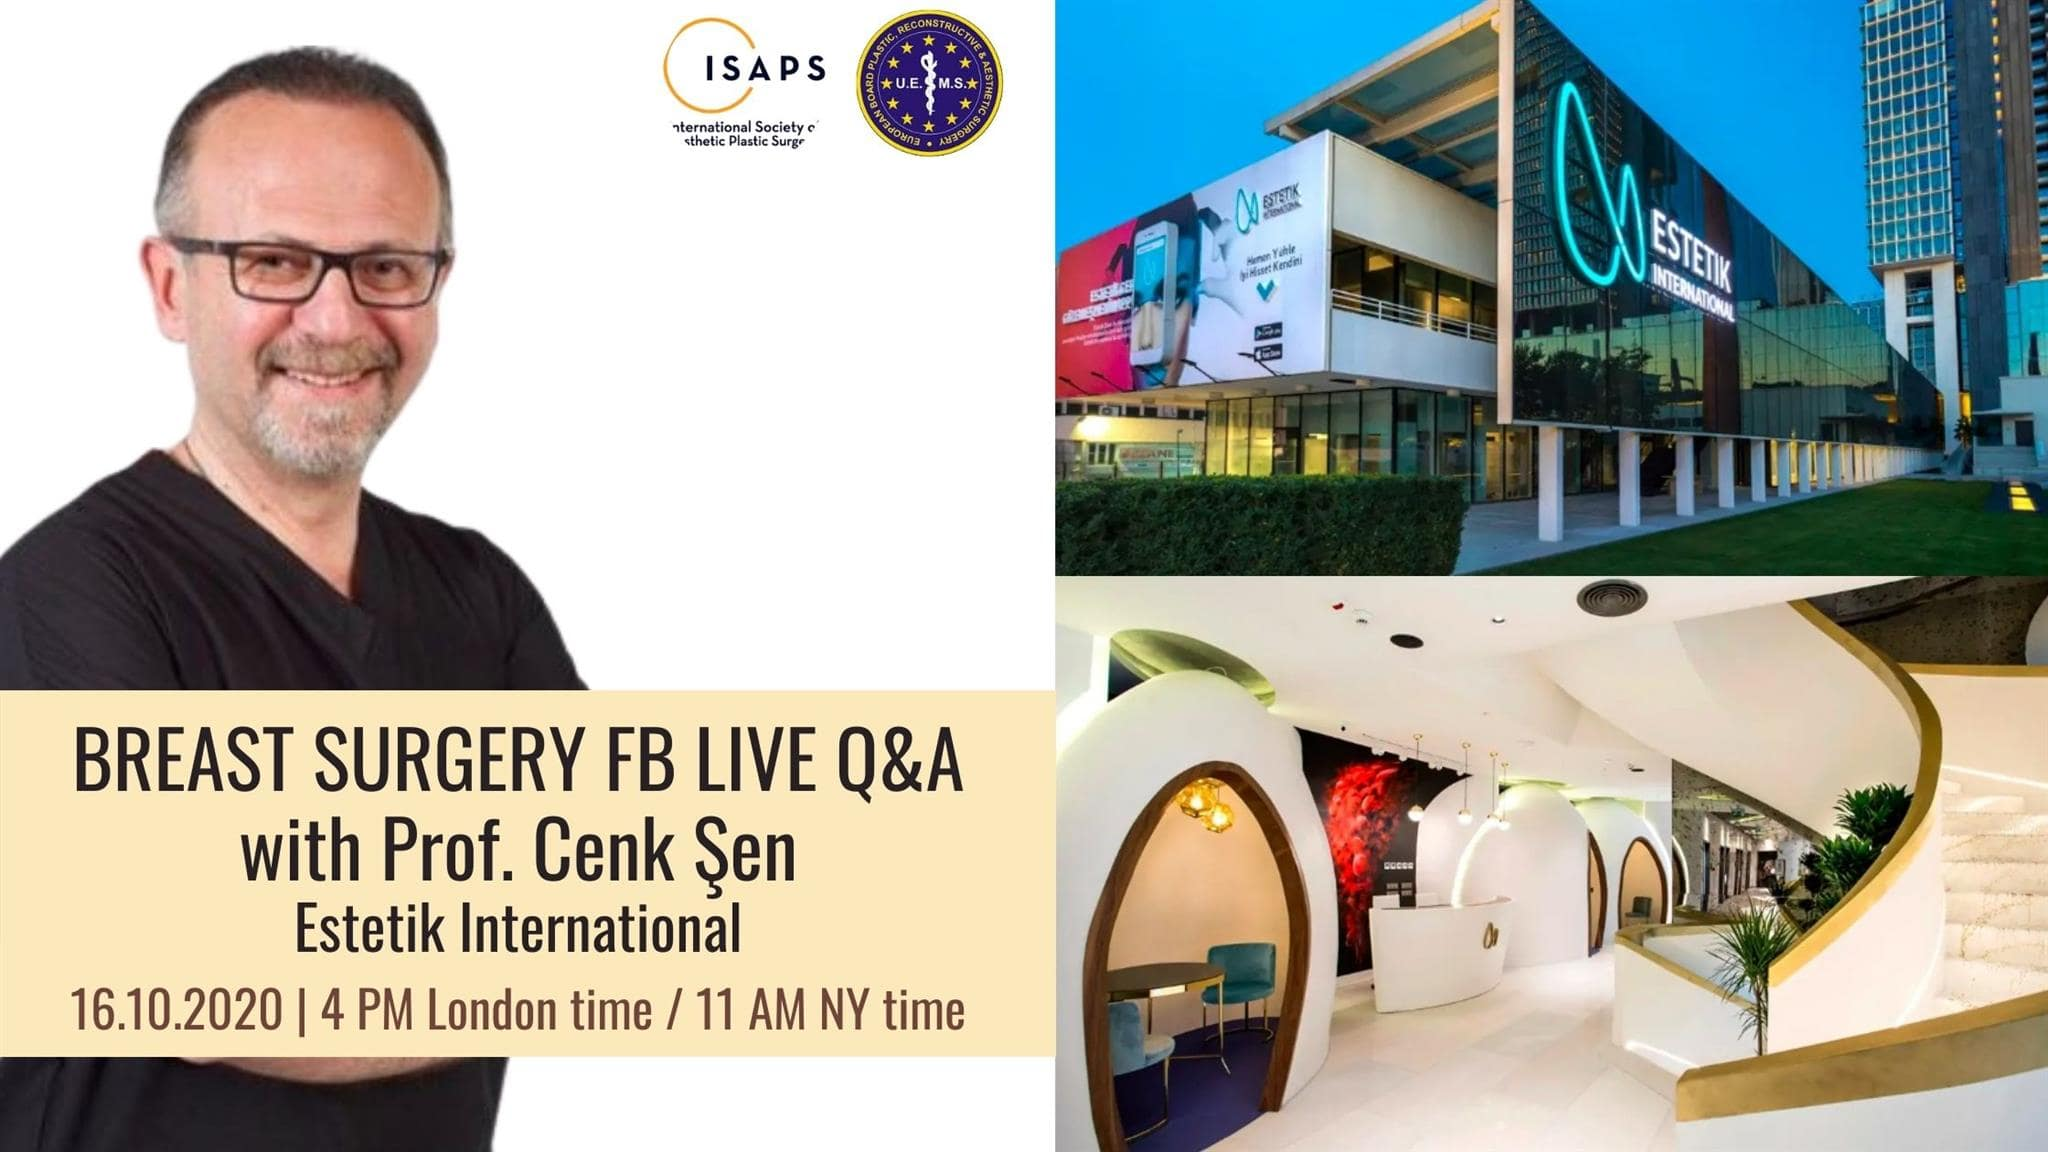 Live Q&A with Prof. Cenk Şen